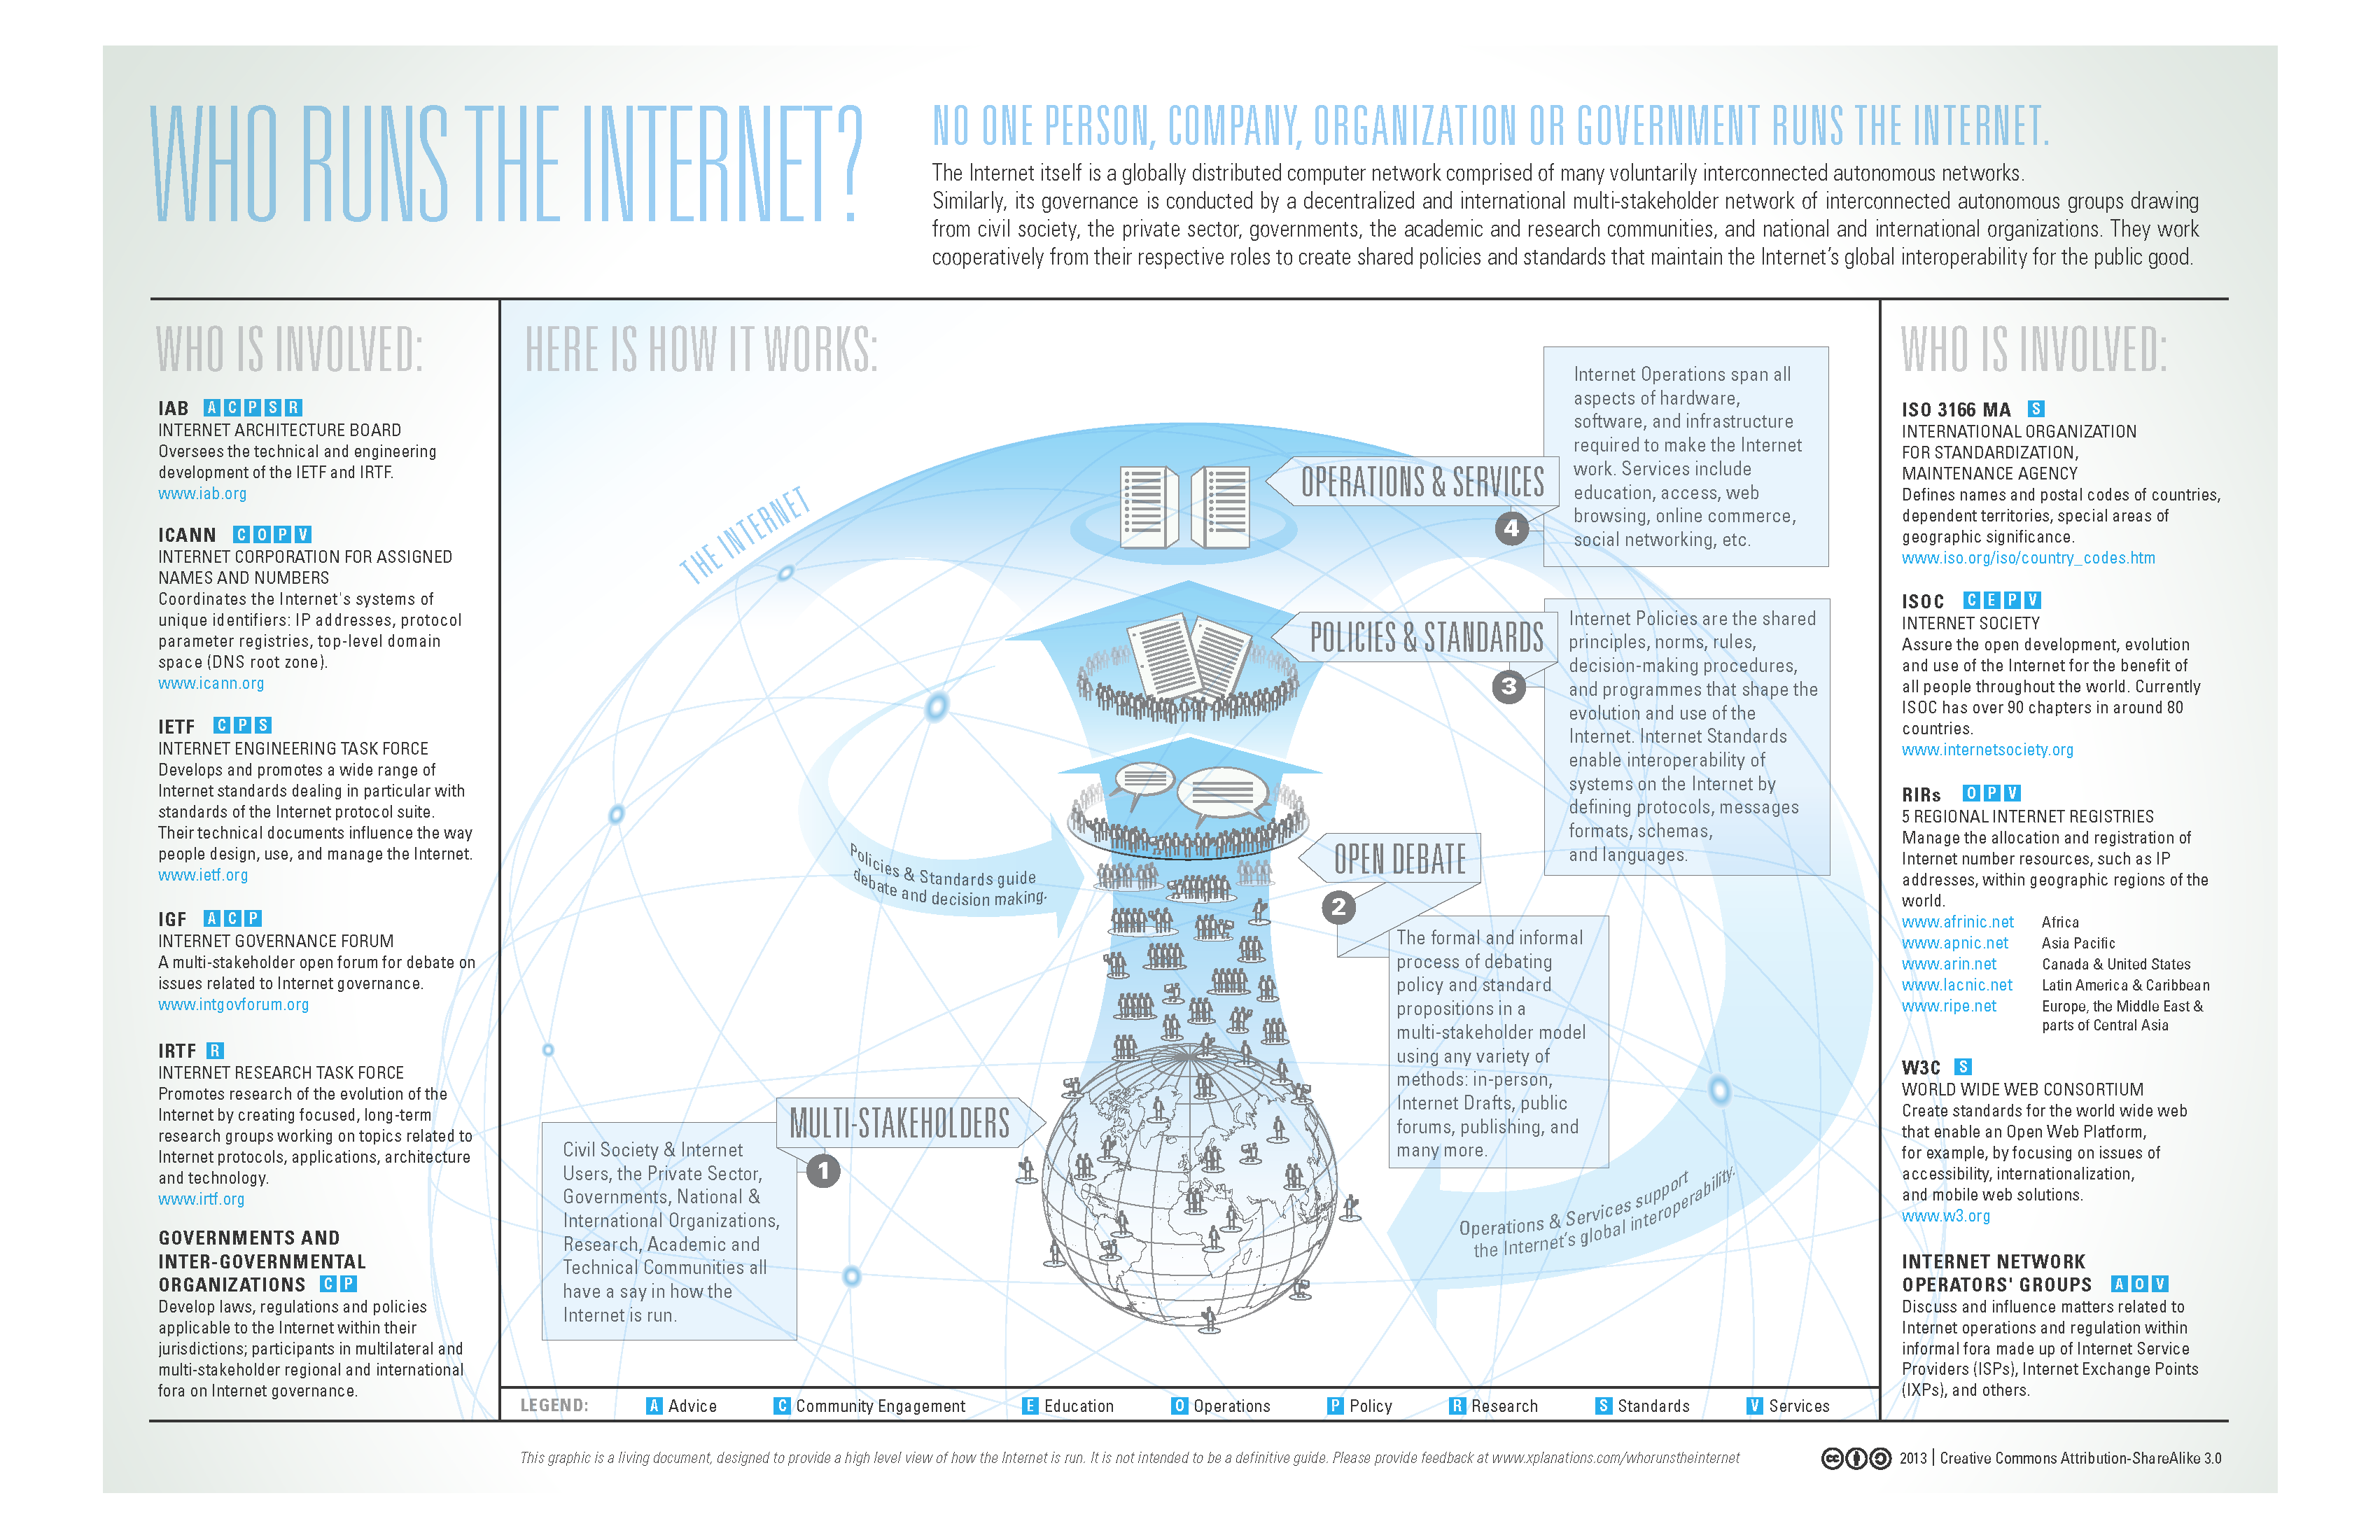 The rule of law on the Internet and in the wider digital world